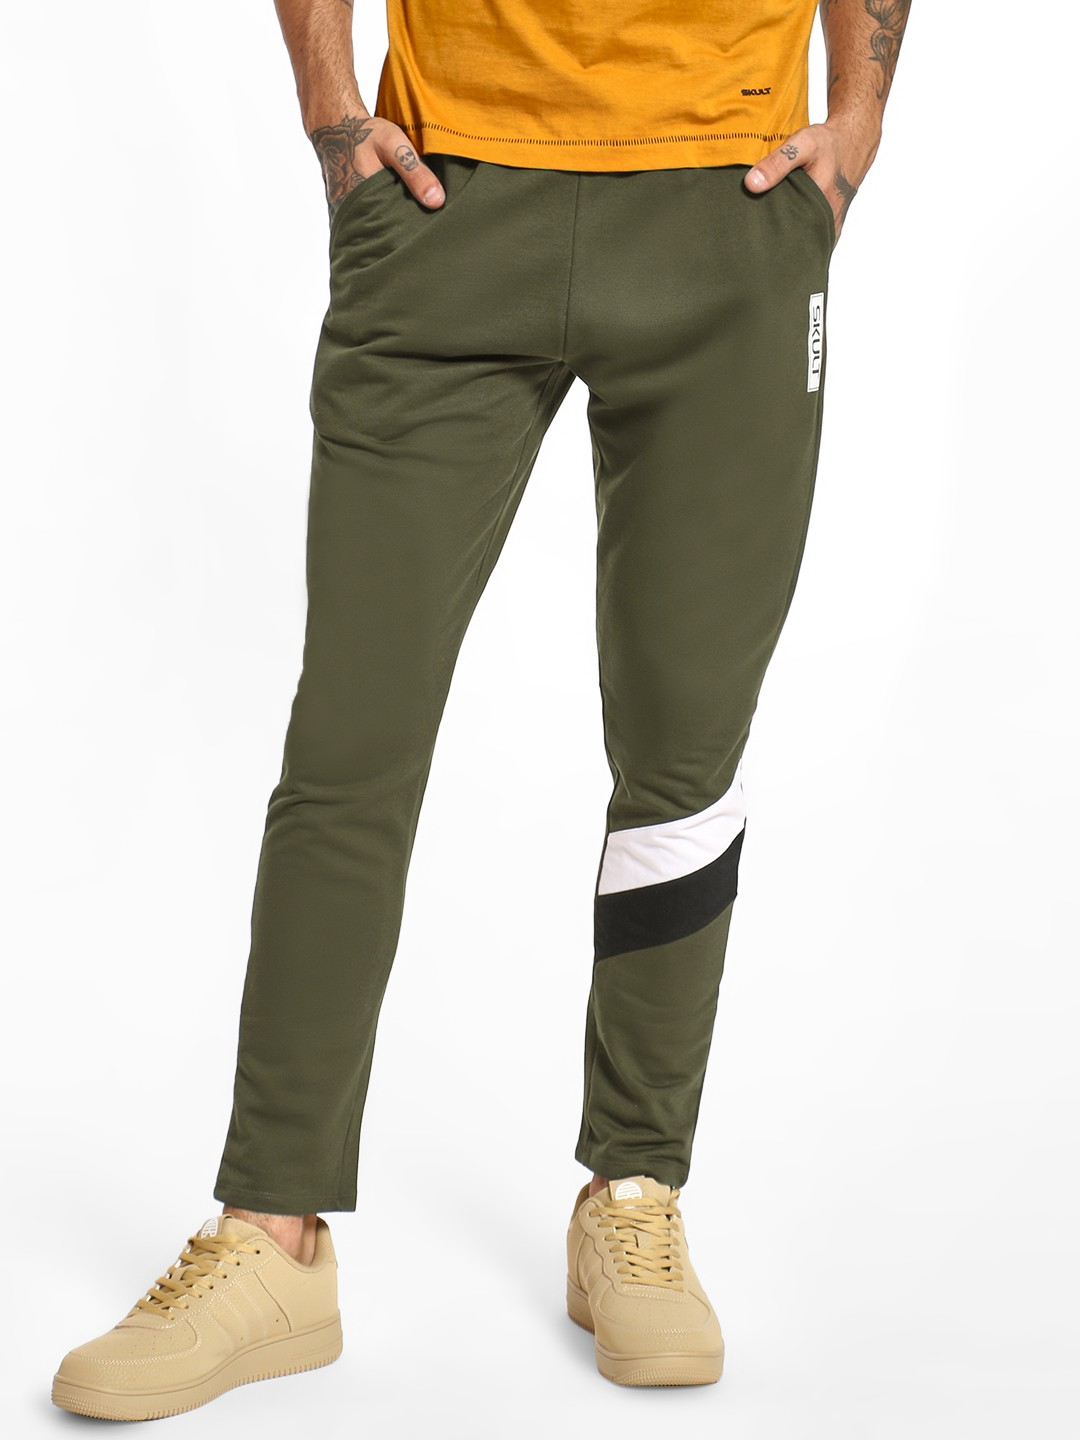 SKULT By Shahid Kapoor Dark Olive  Cut & Sew Contrast Panel Joggers 1